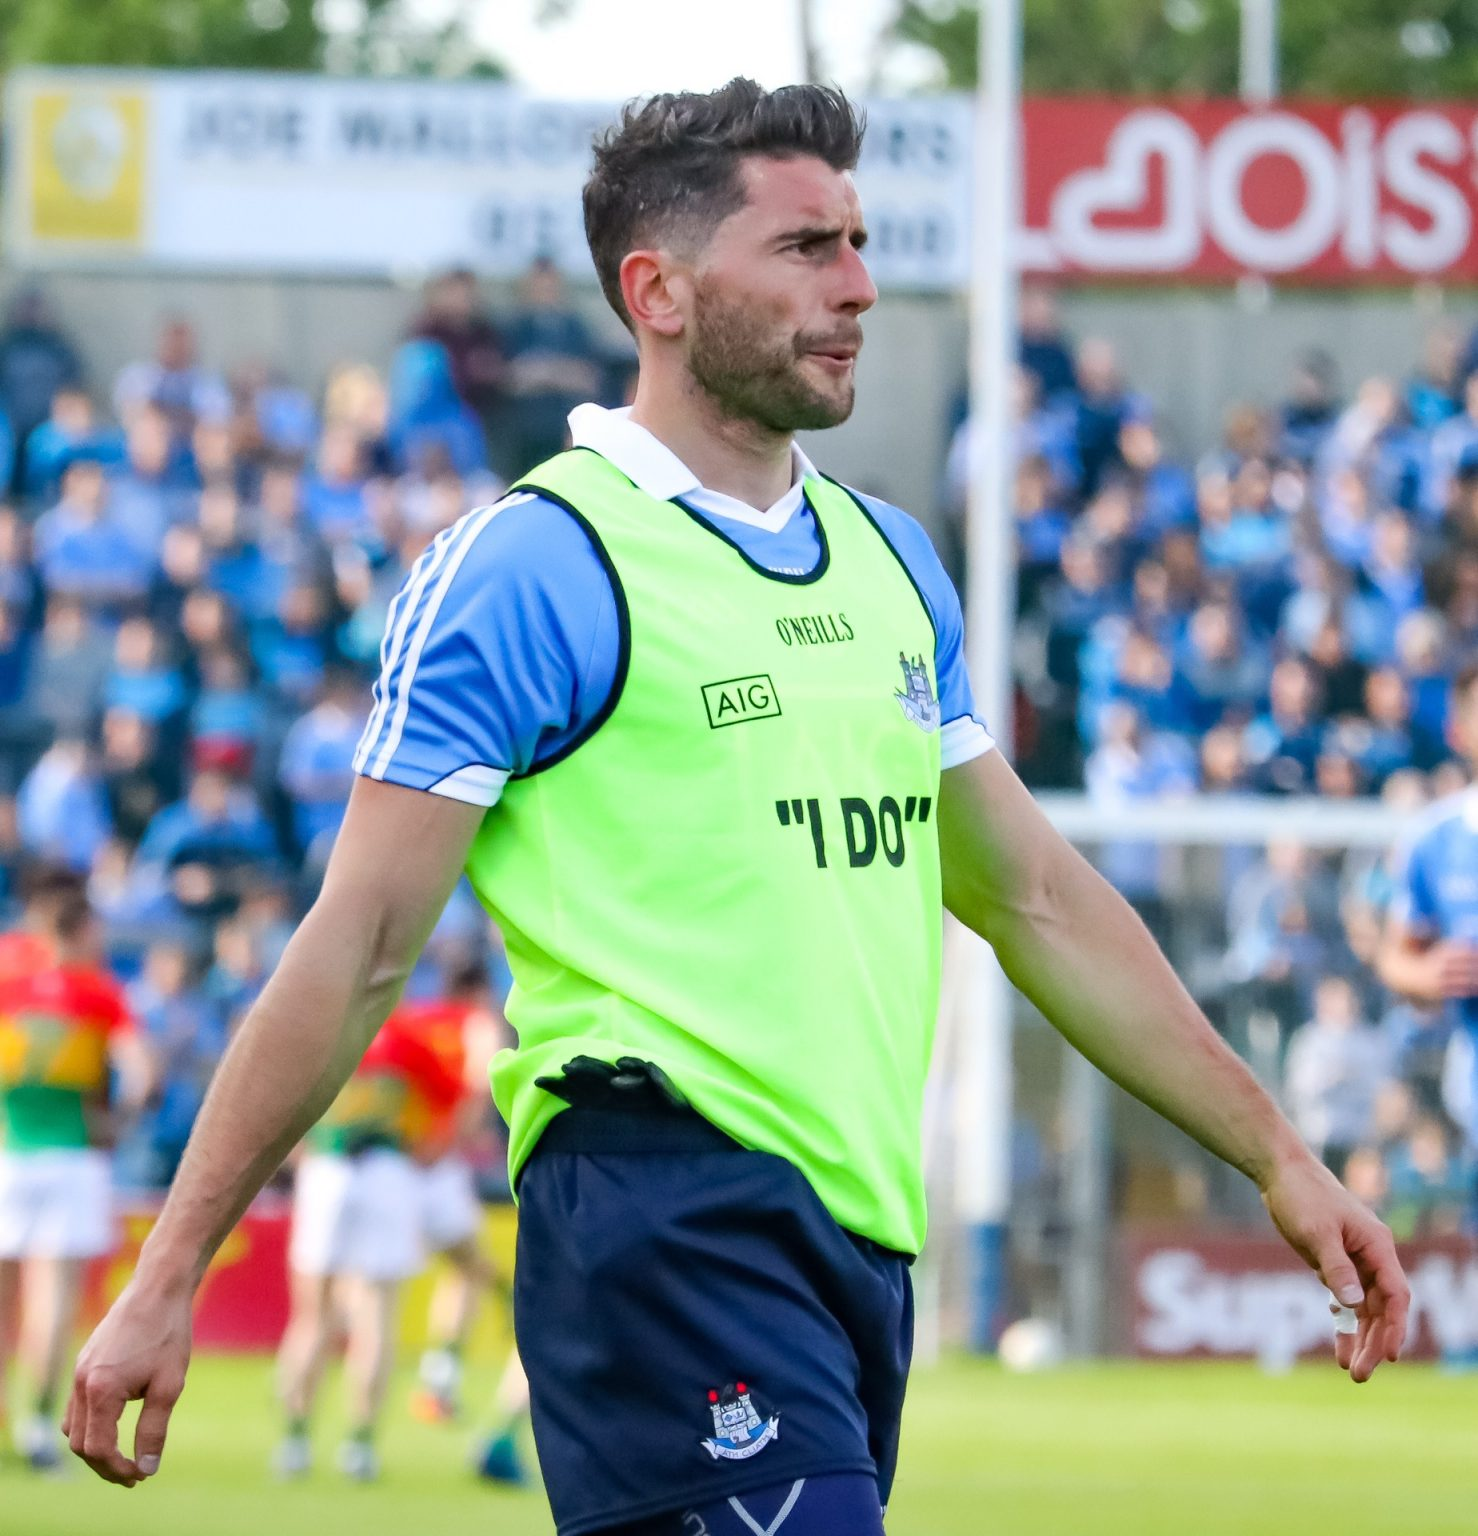 DUBLIN TO FACE EITHER OFFALY OR WICKLOW IN 2018 LEINSTER